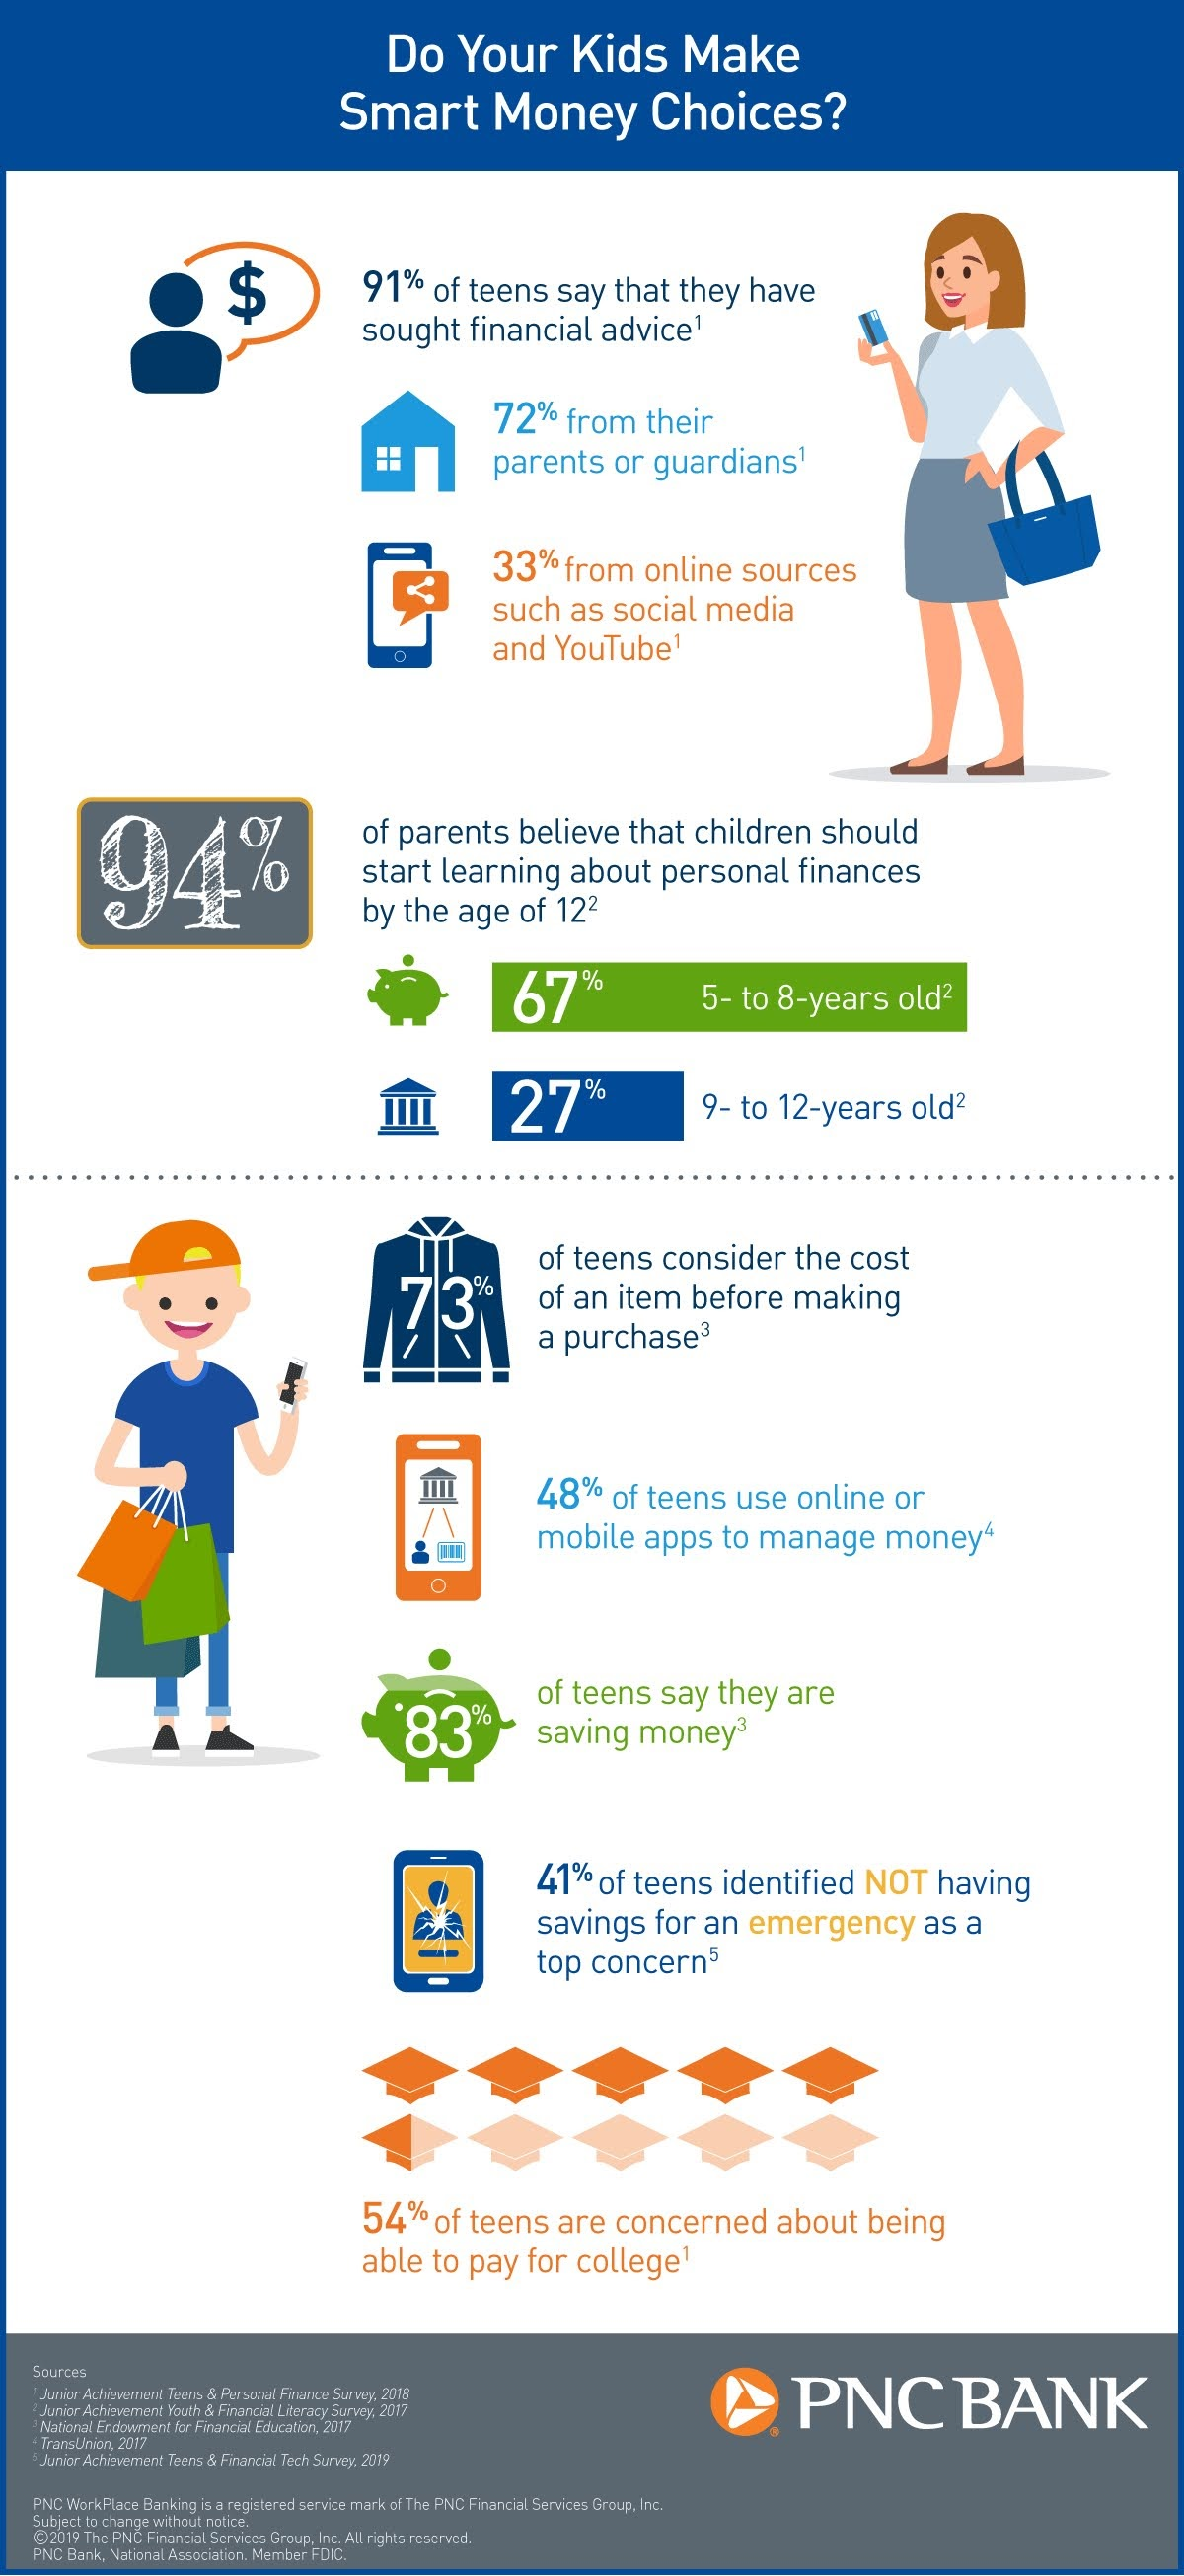 do-your-kids-make-smart-money-choices-infographic